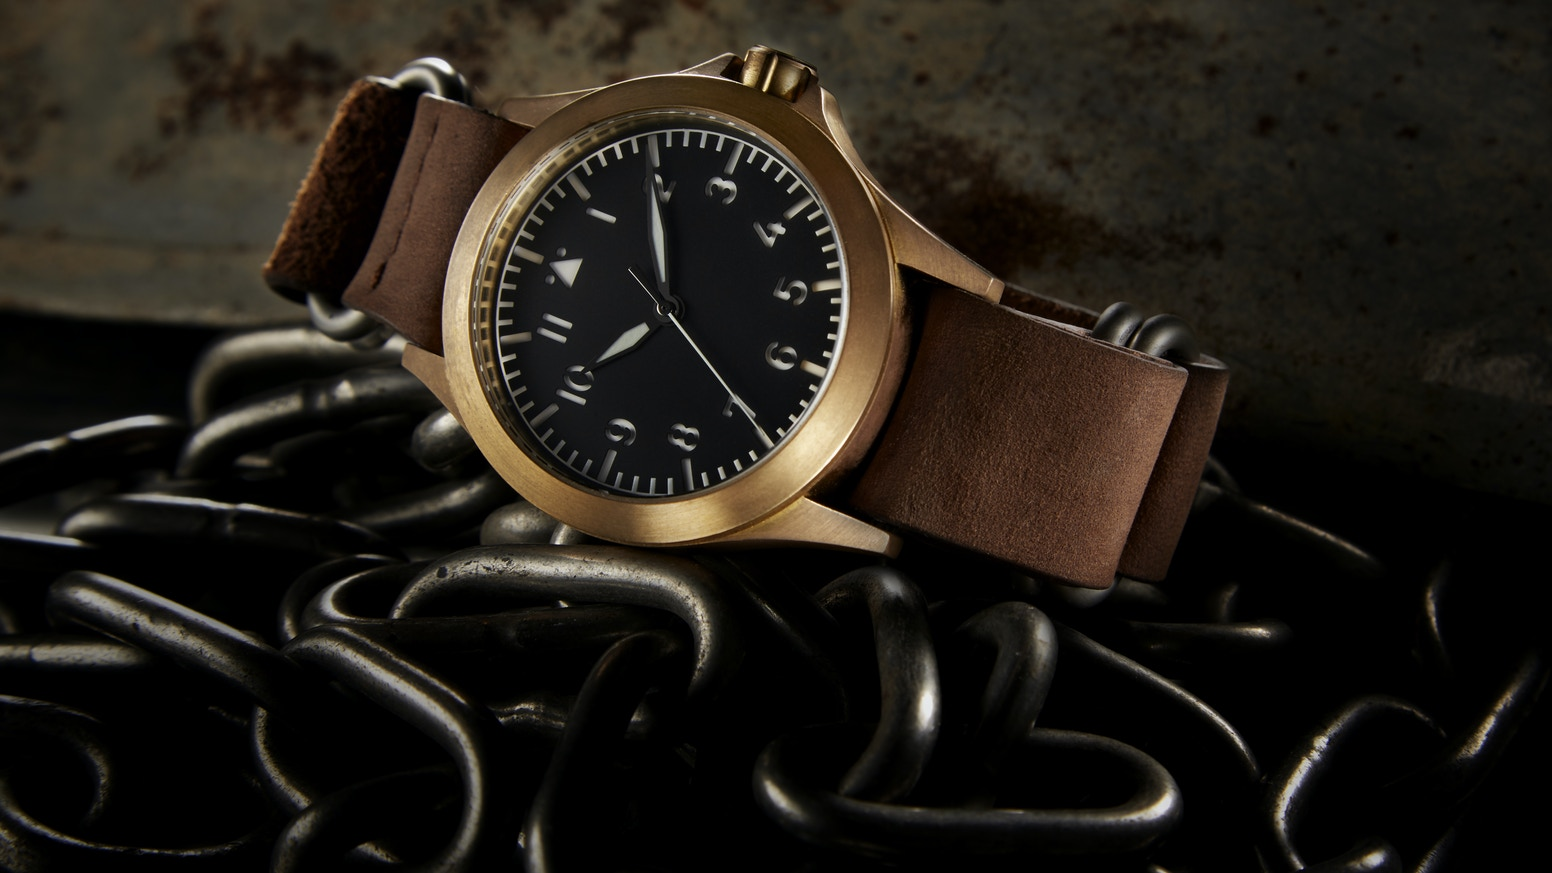 A reinterpretation of the classic WW2 pilot's watch. Crafted from brass which develops a patina unique to you.